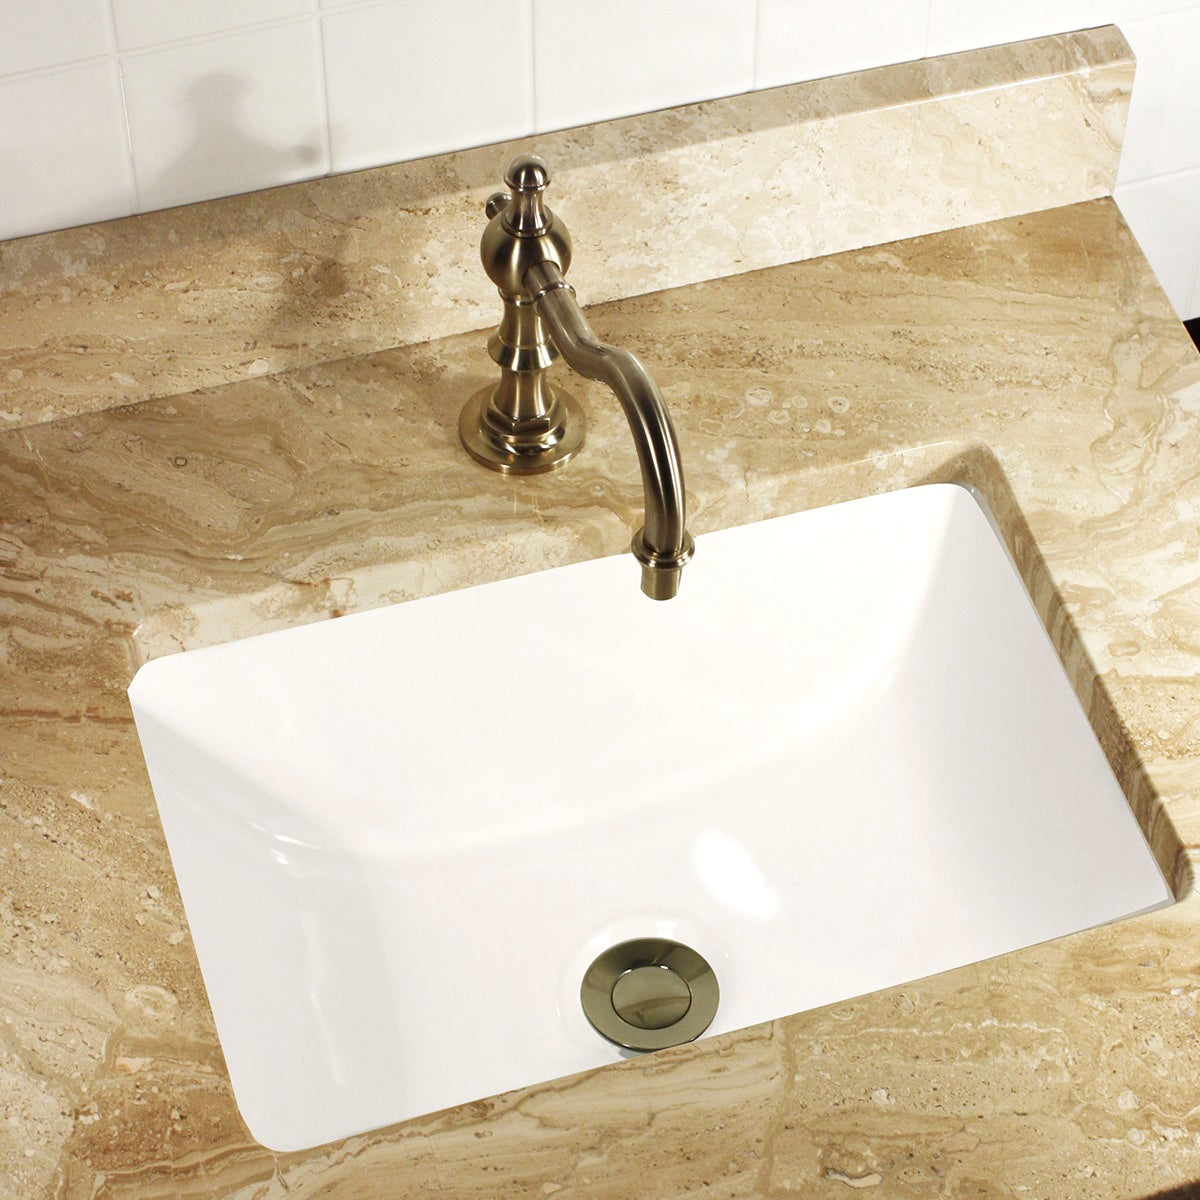 Sink Undermount : ... Rectangle Ceramic Undermount WHITE Vanity Sink Bathroom SINKS eBay